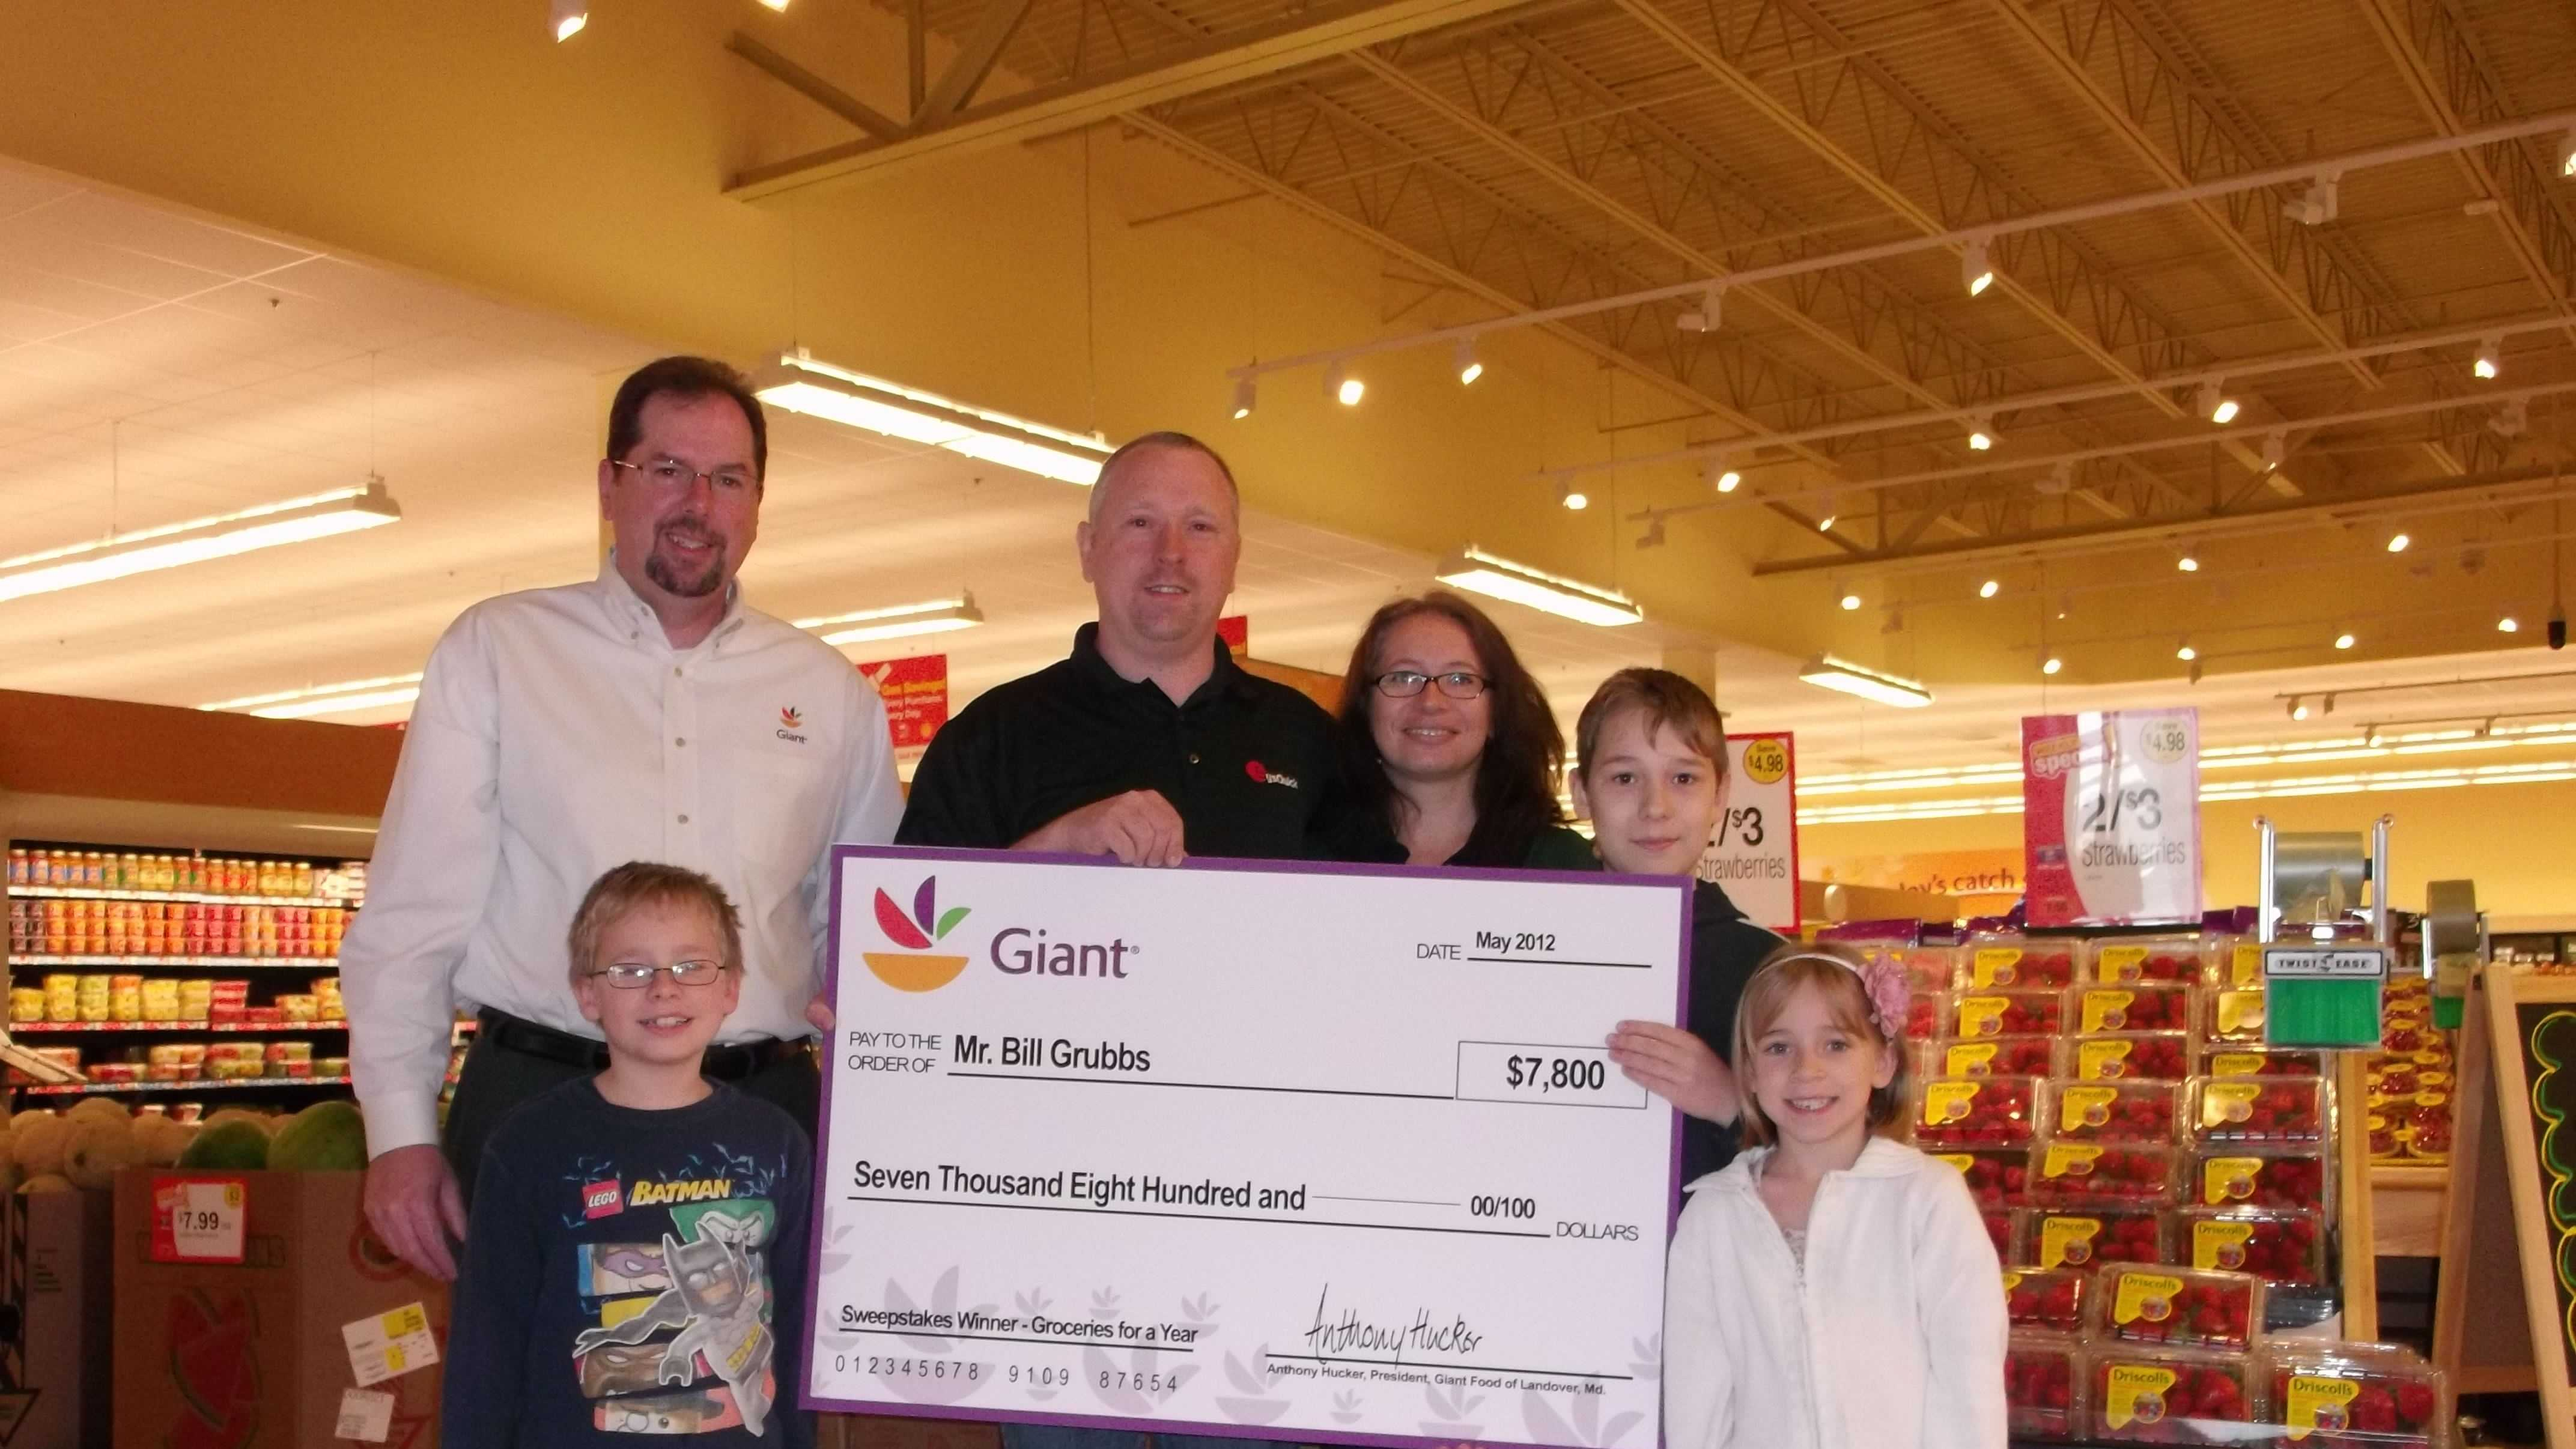 Jamie Miller (left), public and community relations manager for Giant Food of Landover, Md., presents the Year of Groceries Sweepstakes Winner Bill Grubbs with a check for $7,800 at the new Parkville Giant in Parkville, Md. Grubbs, joined by his wife and three children, will receive Giant Food gift cards, totaling $7,800 to spend on groceries at his neighborhood store.